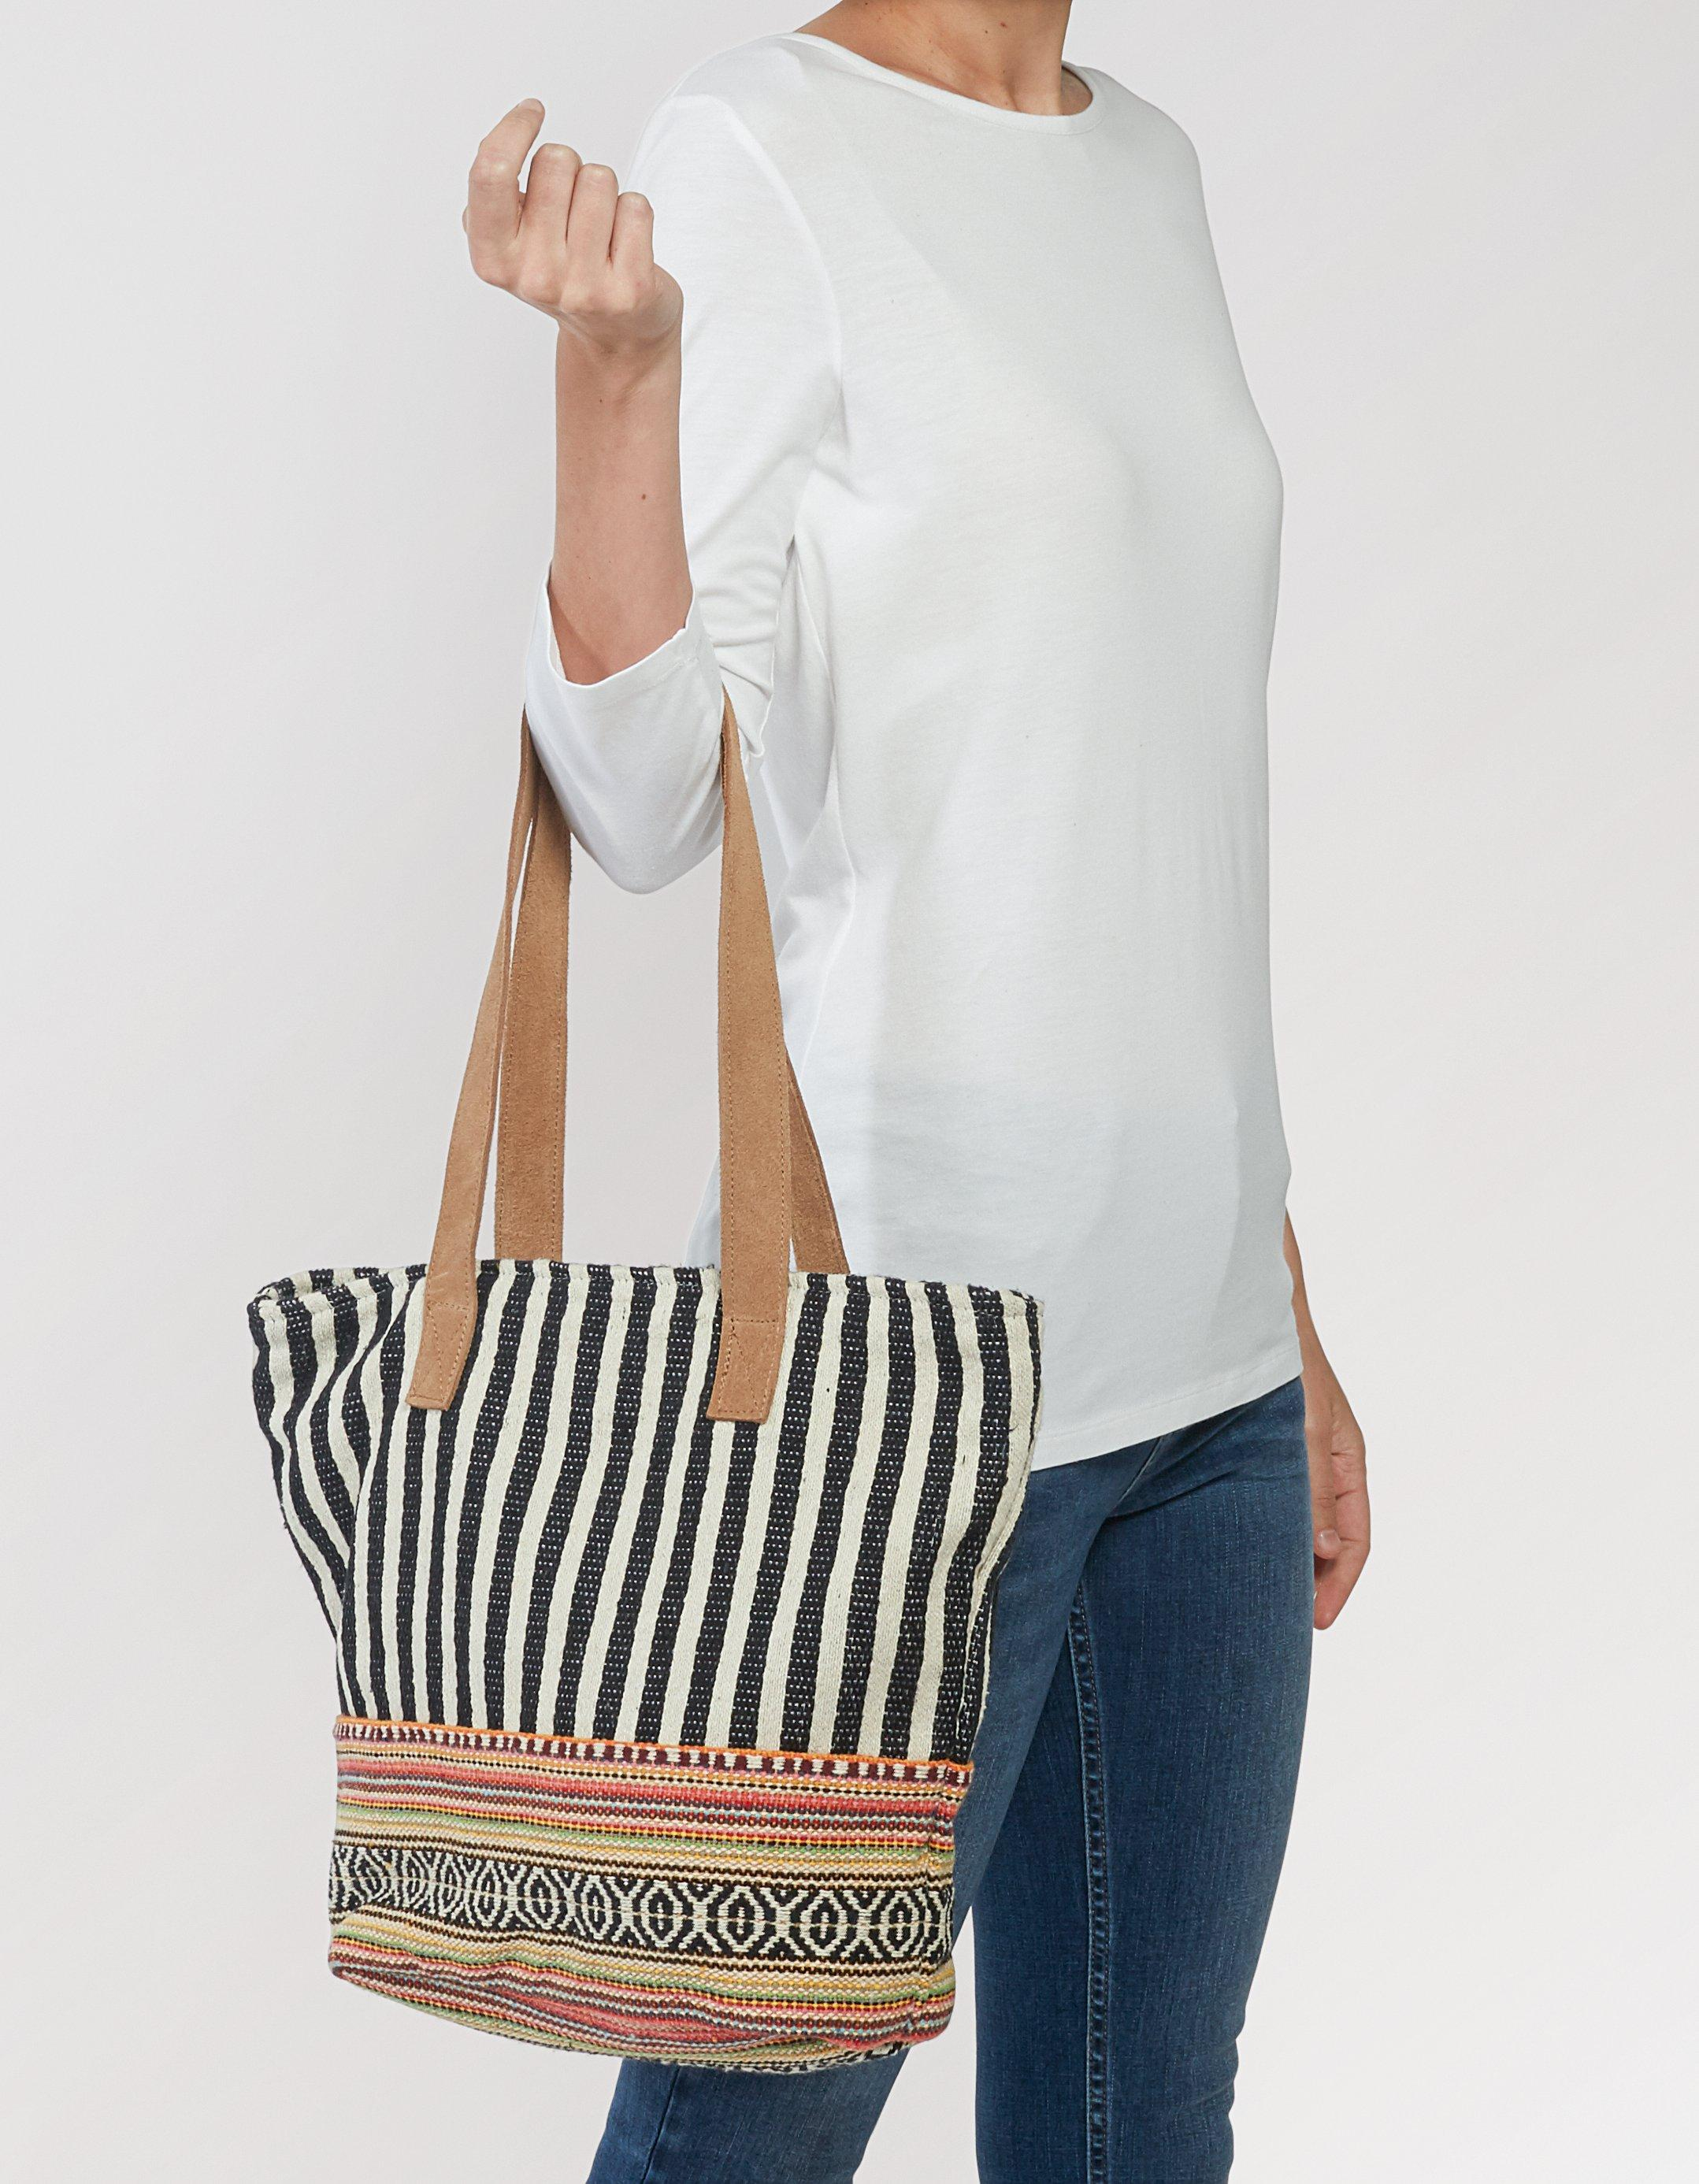 Woven Patchwork Tote Bag